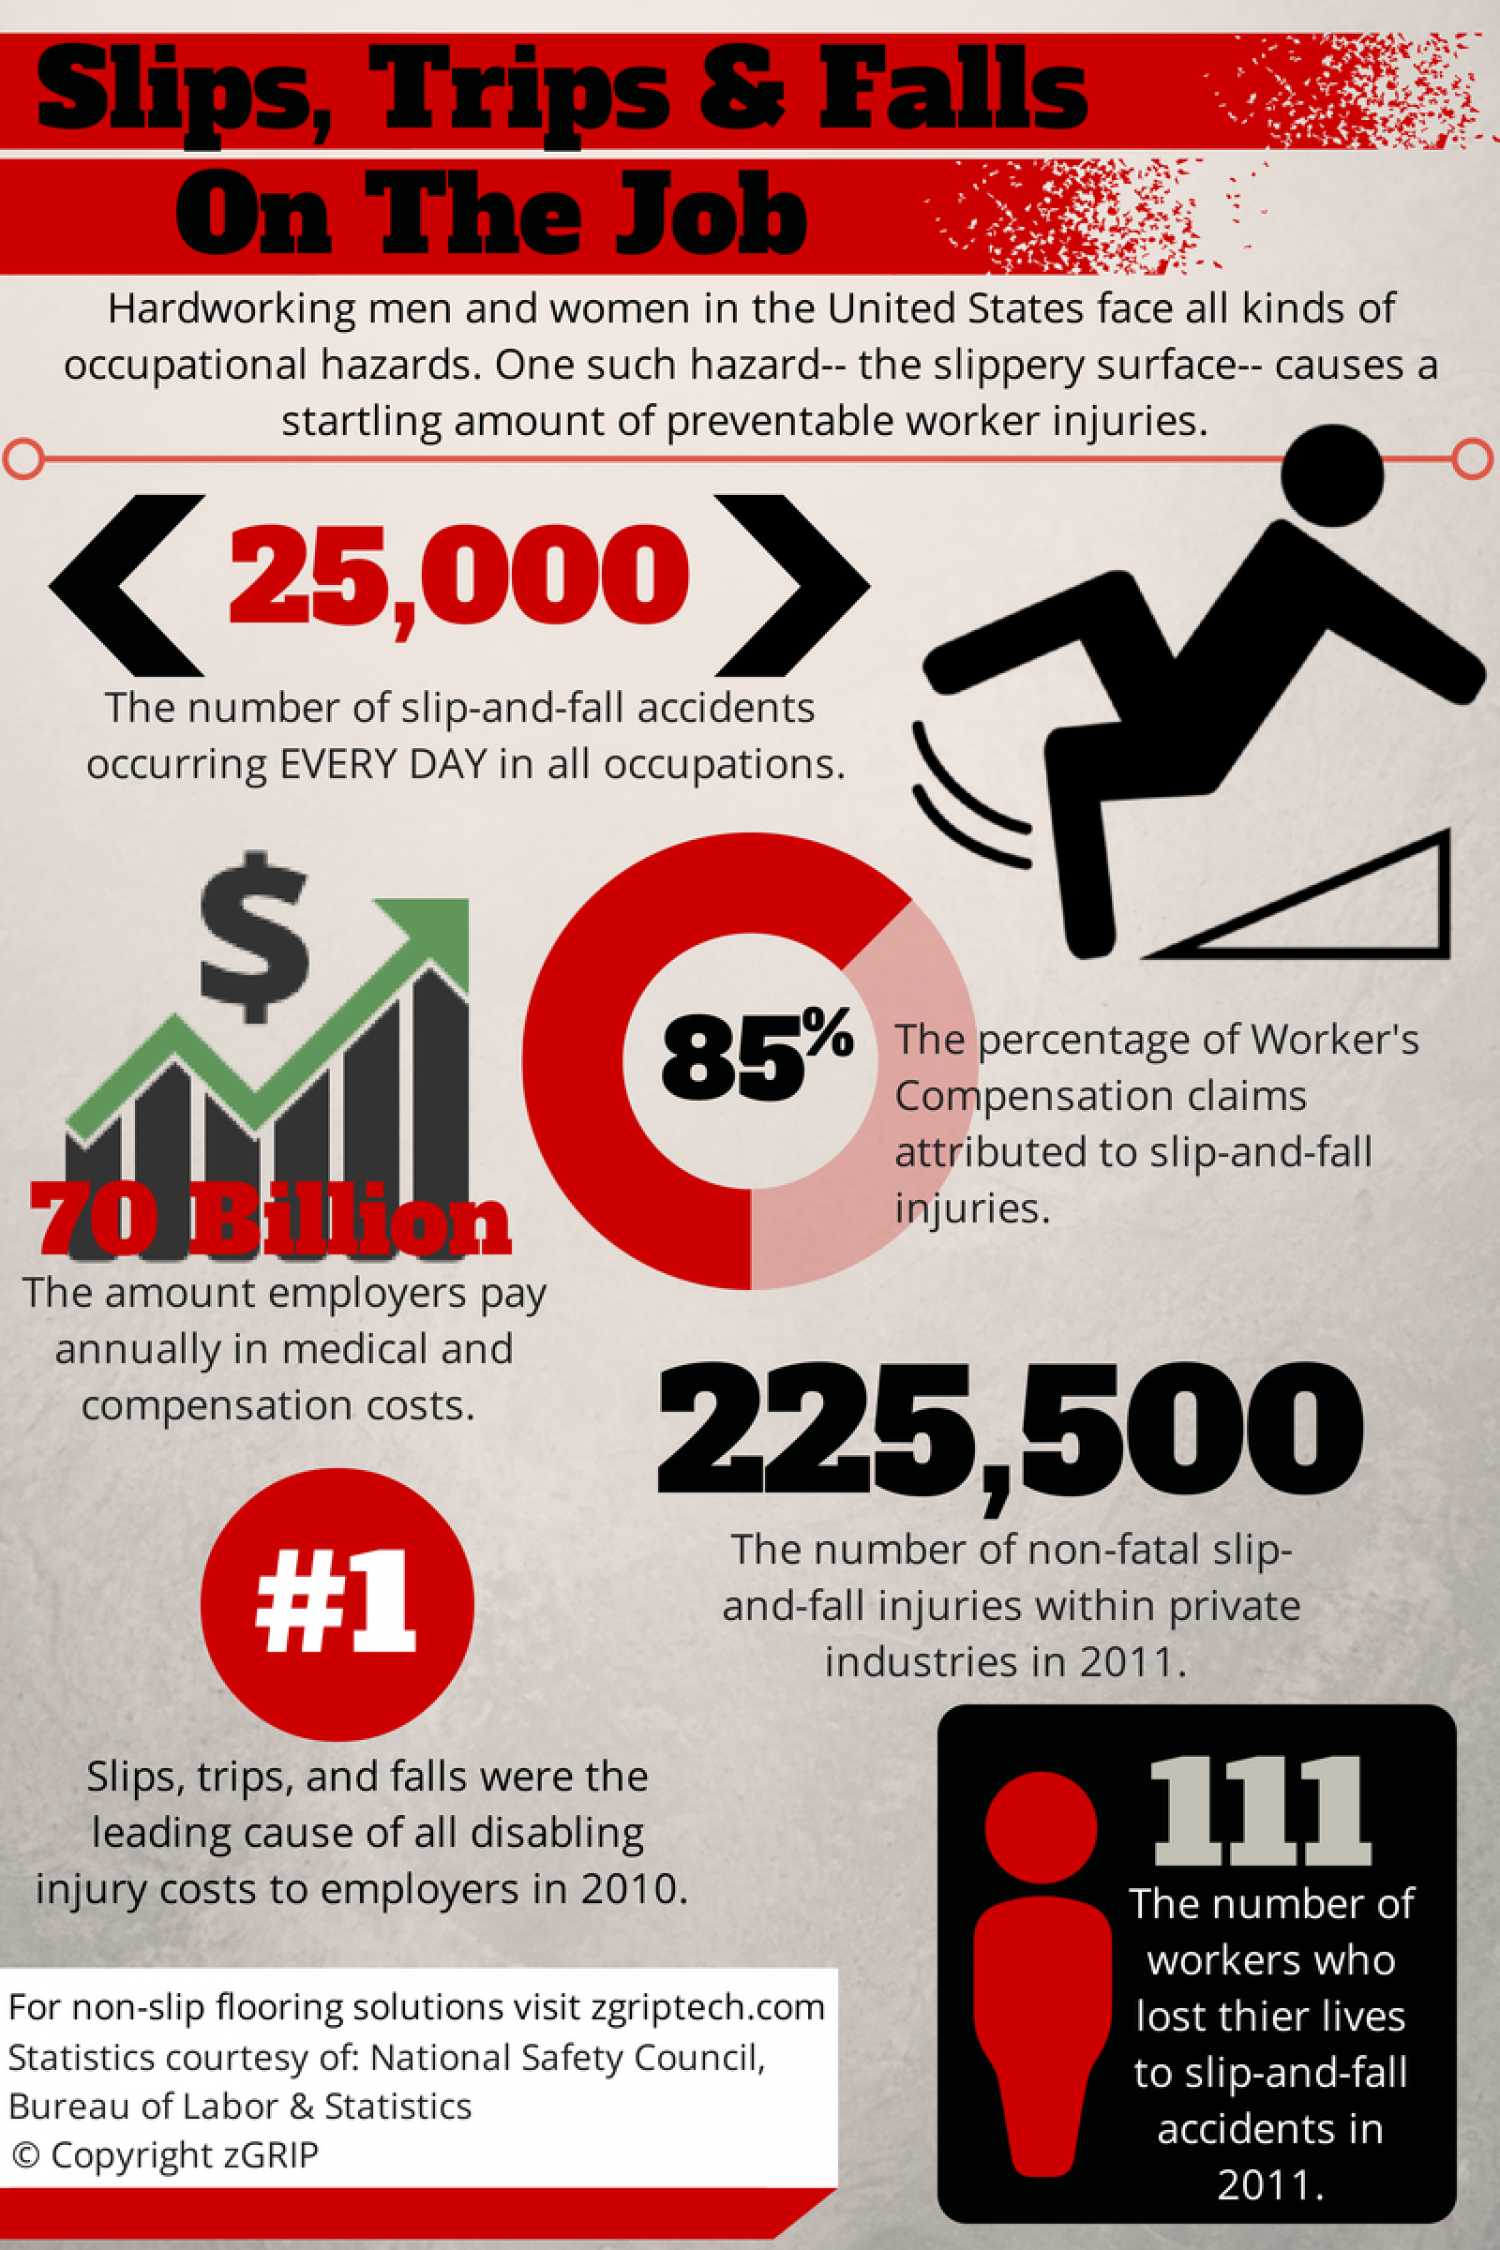 Slips, Trips, and Falls On The Job Infographic